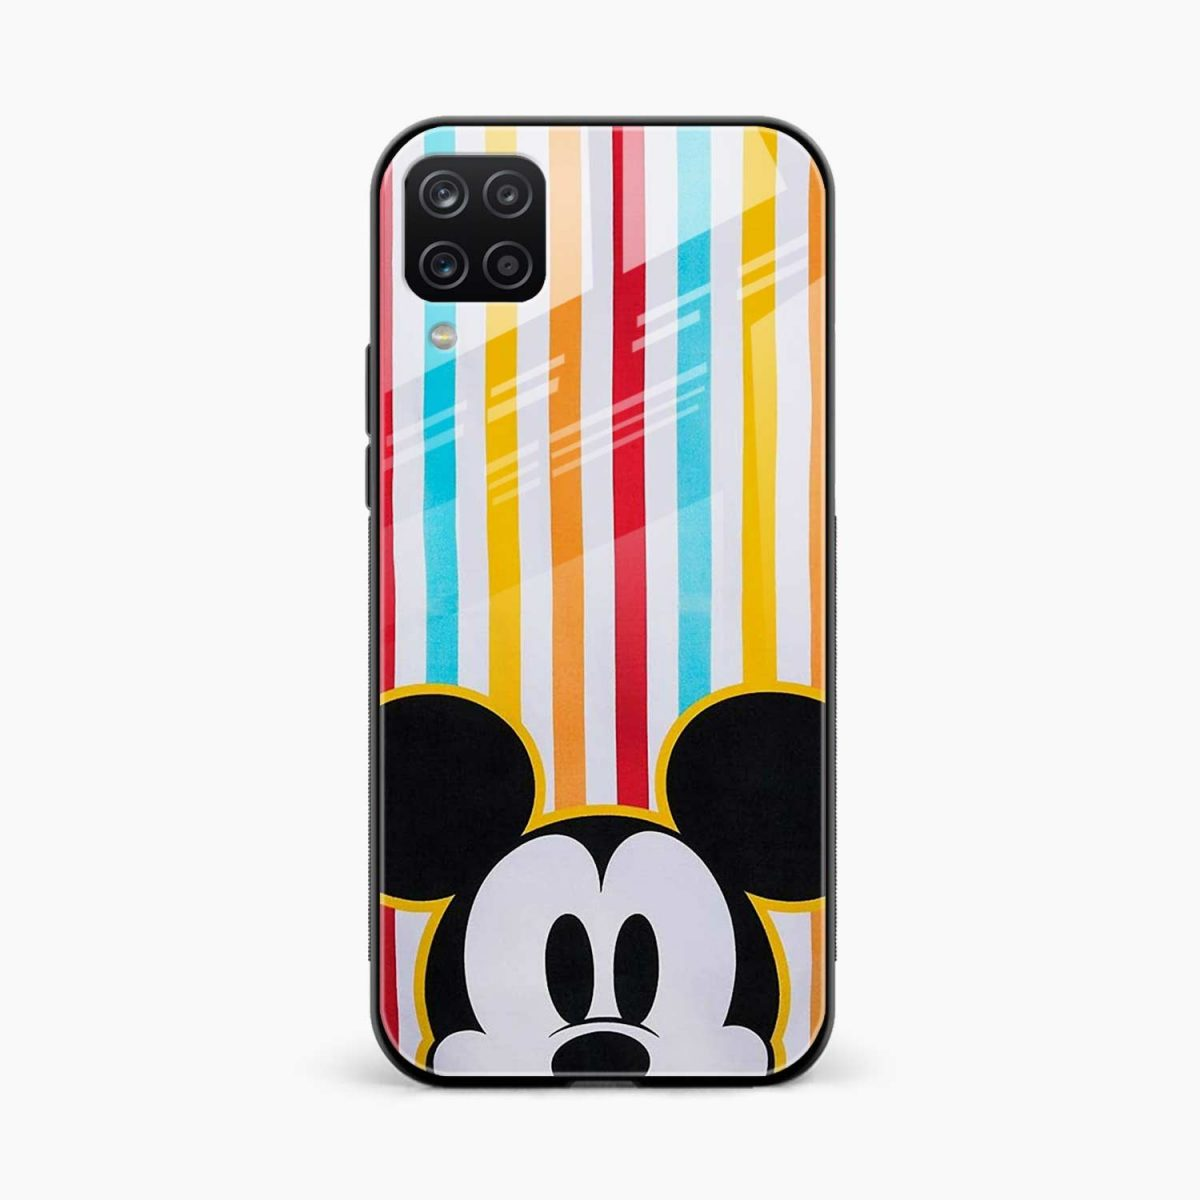 rigid spy mickey mouse front view samsung galaxy a12 back cover